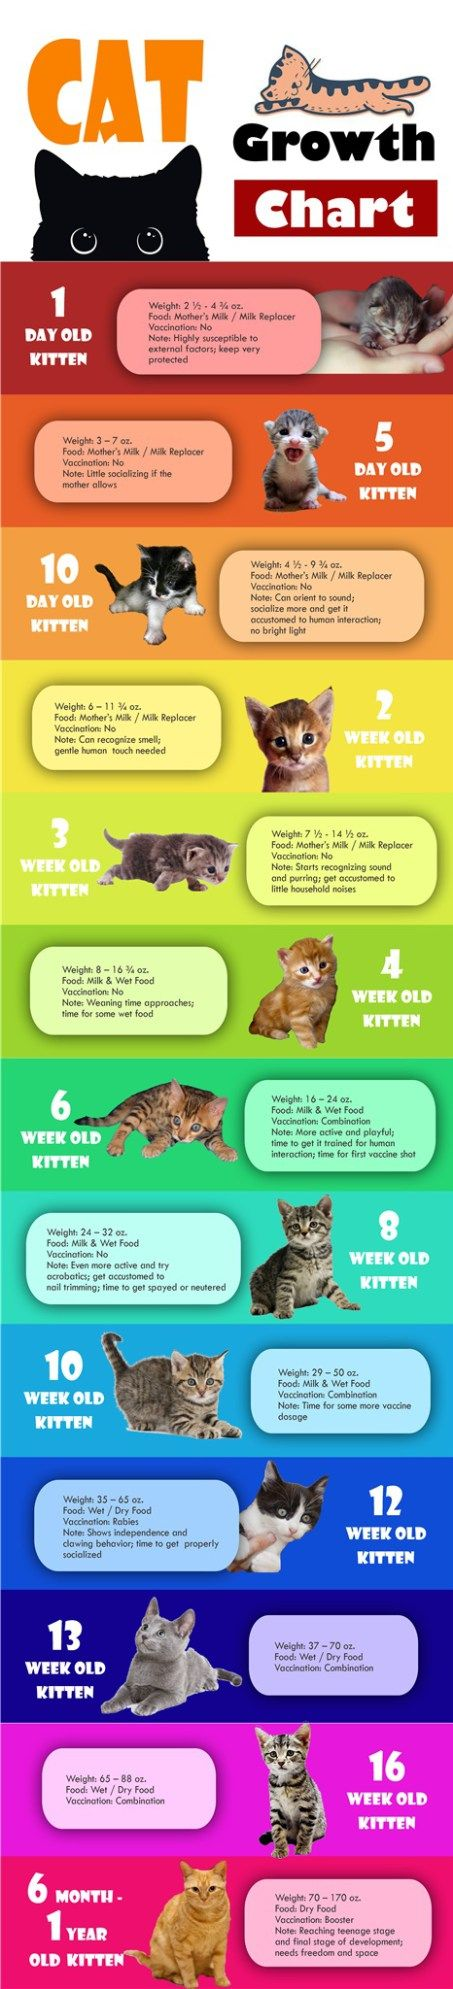 Infographic Kitten Cat Growth Chart By Age Weight And Food Kitten Care Kitten Cat Infographic